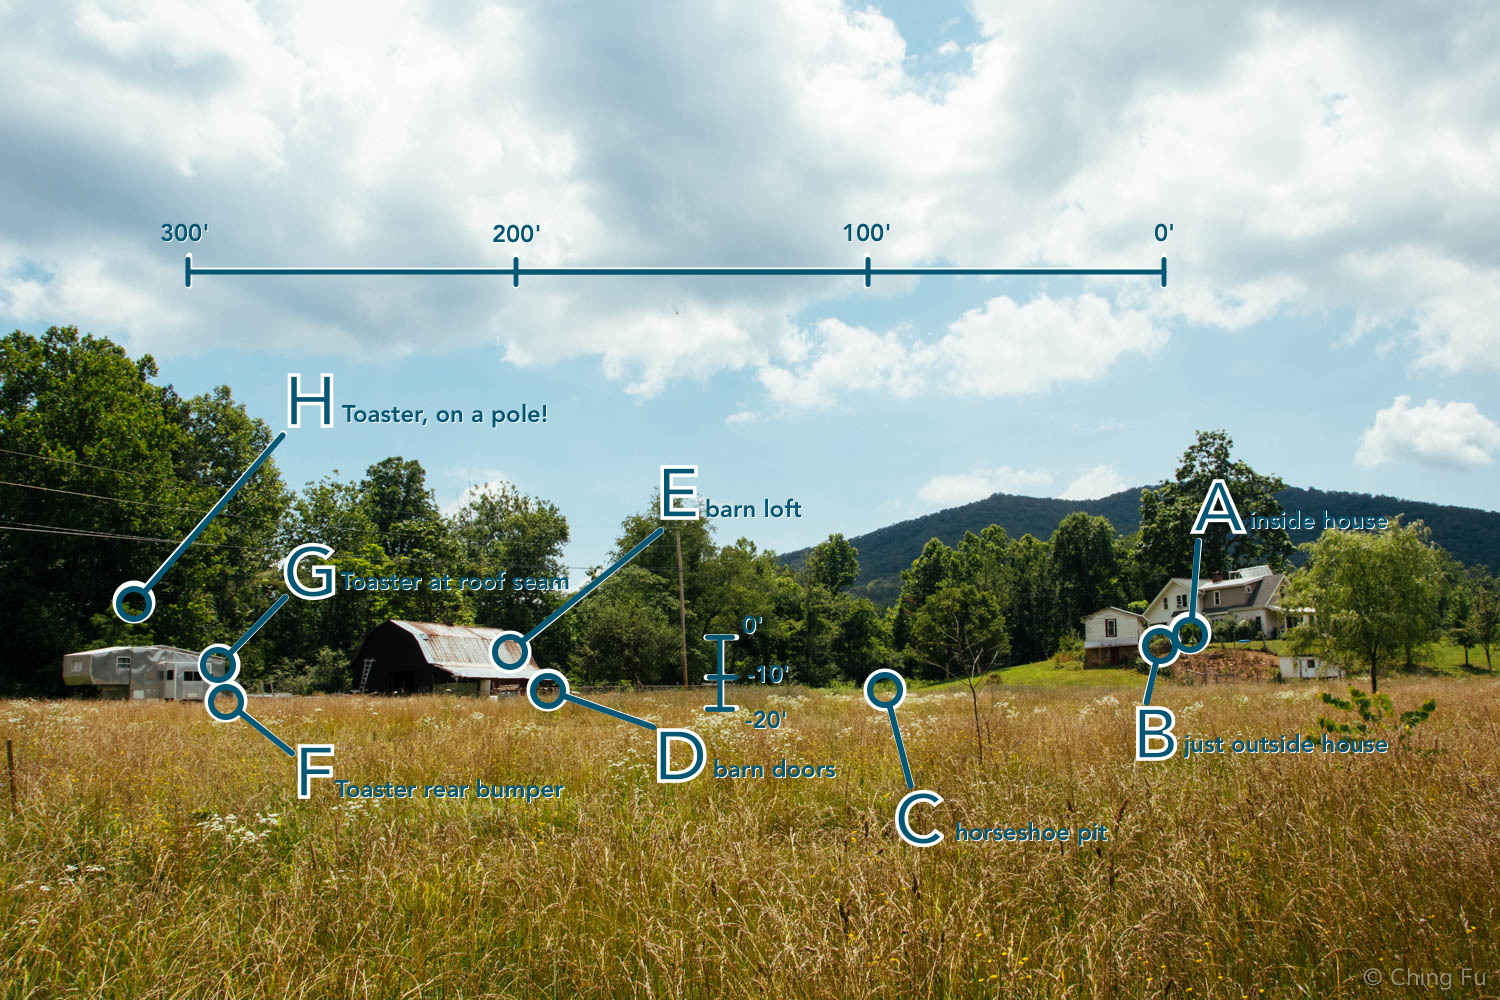 Farm layout showing the Toaster vs. the Farmhouse (source of Wi-Fi). Click to enlarge and read the small text.